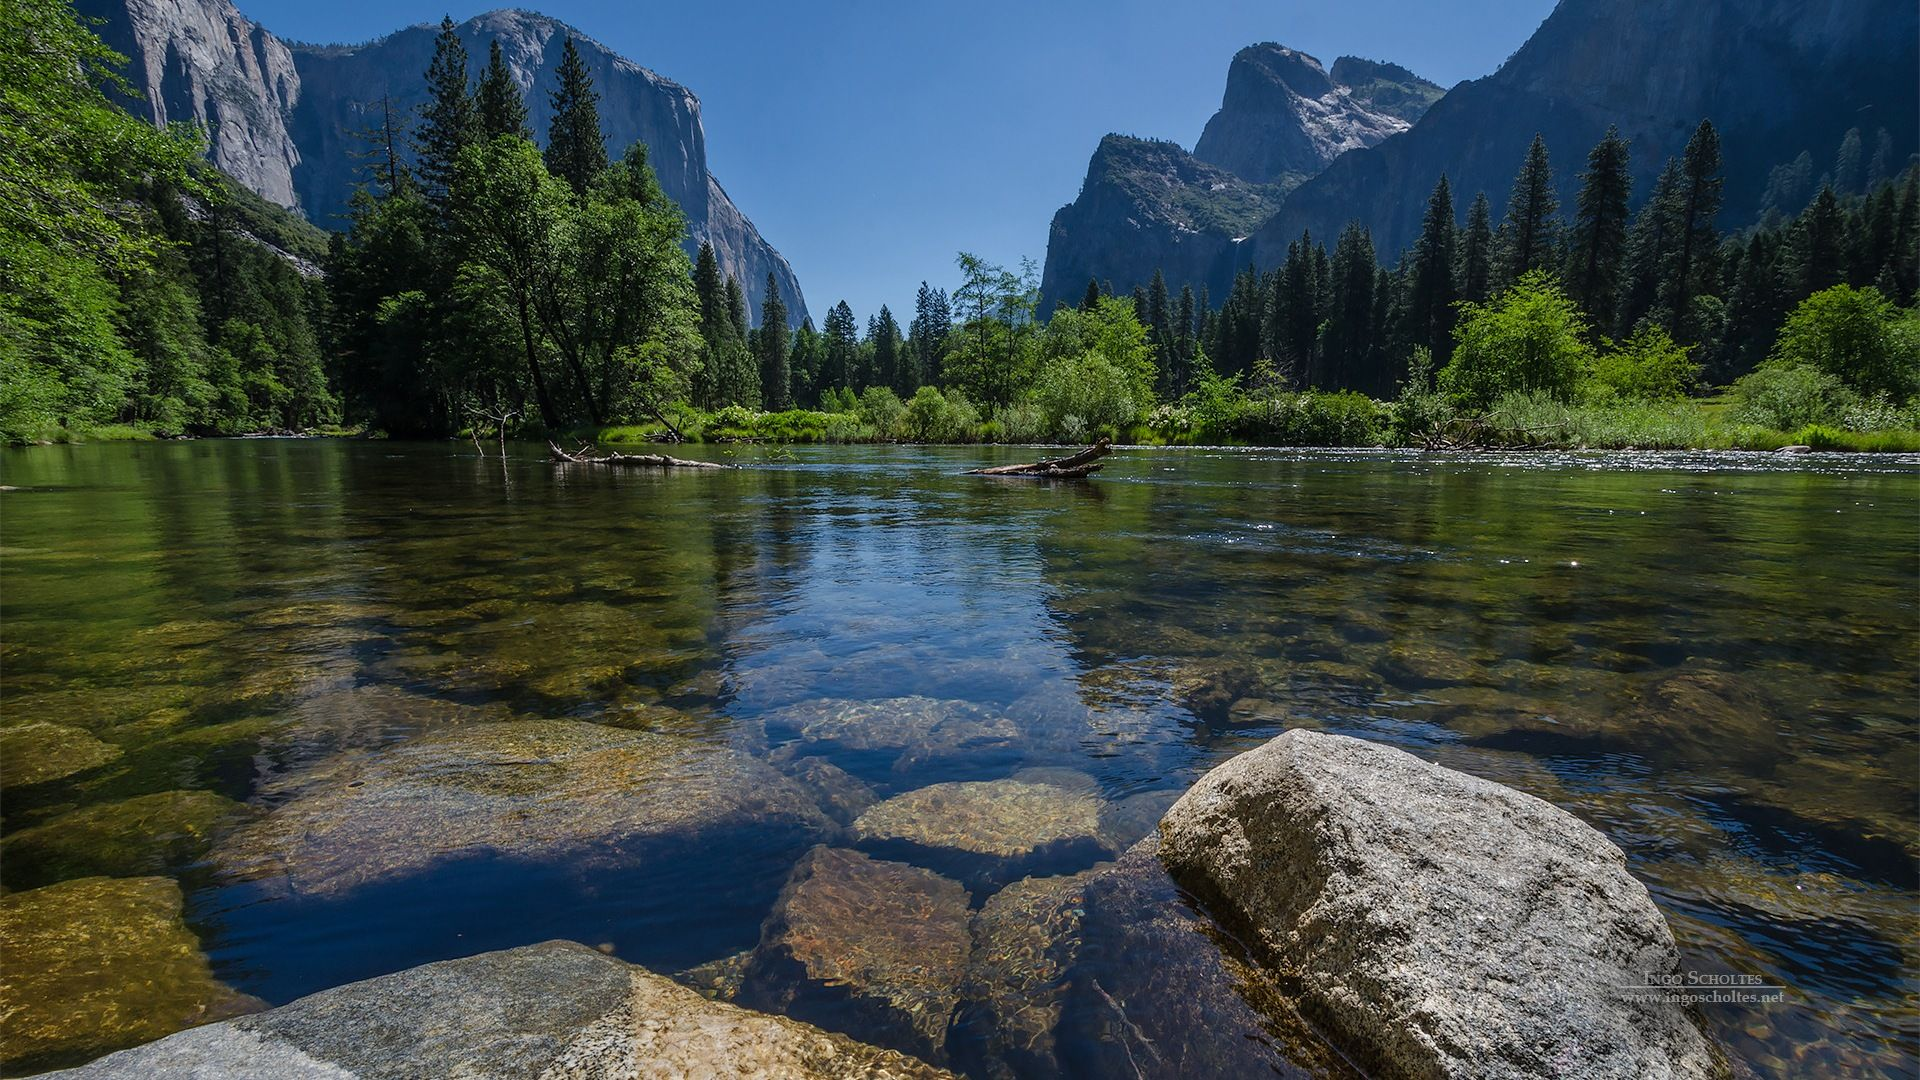 Windows 8 theme yosemite national park hd wallpapers 1 - Yosemite national park hd wallpaper ...